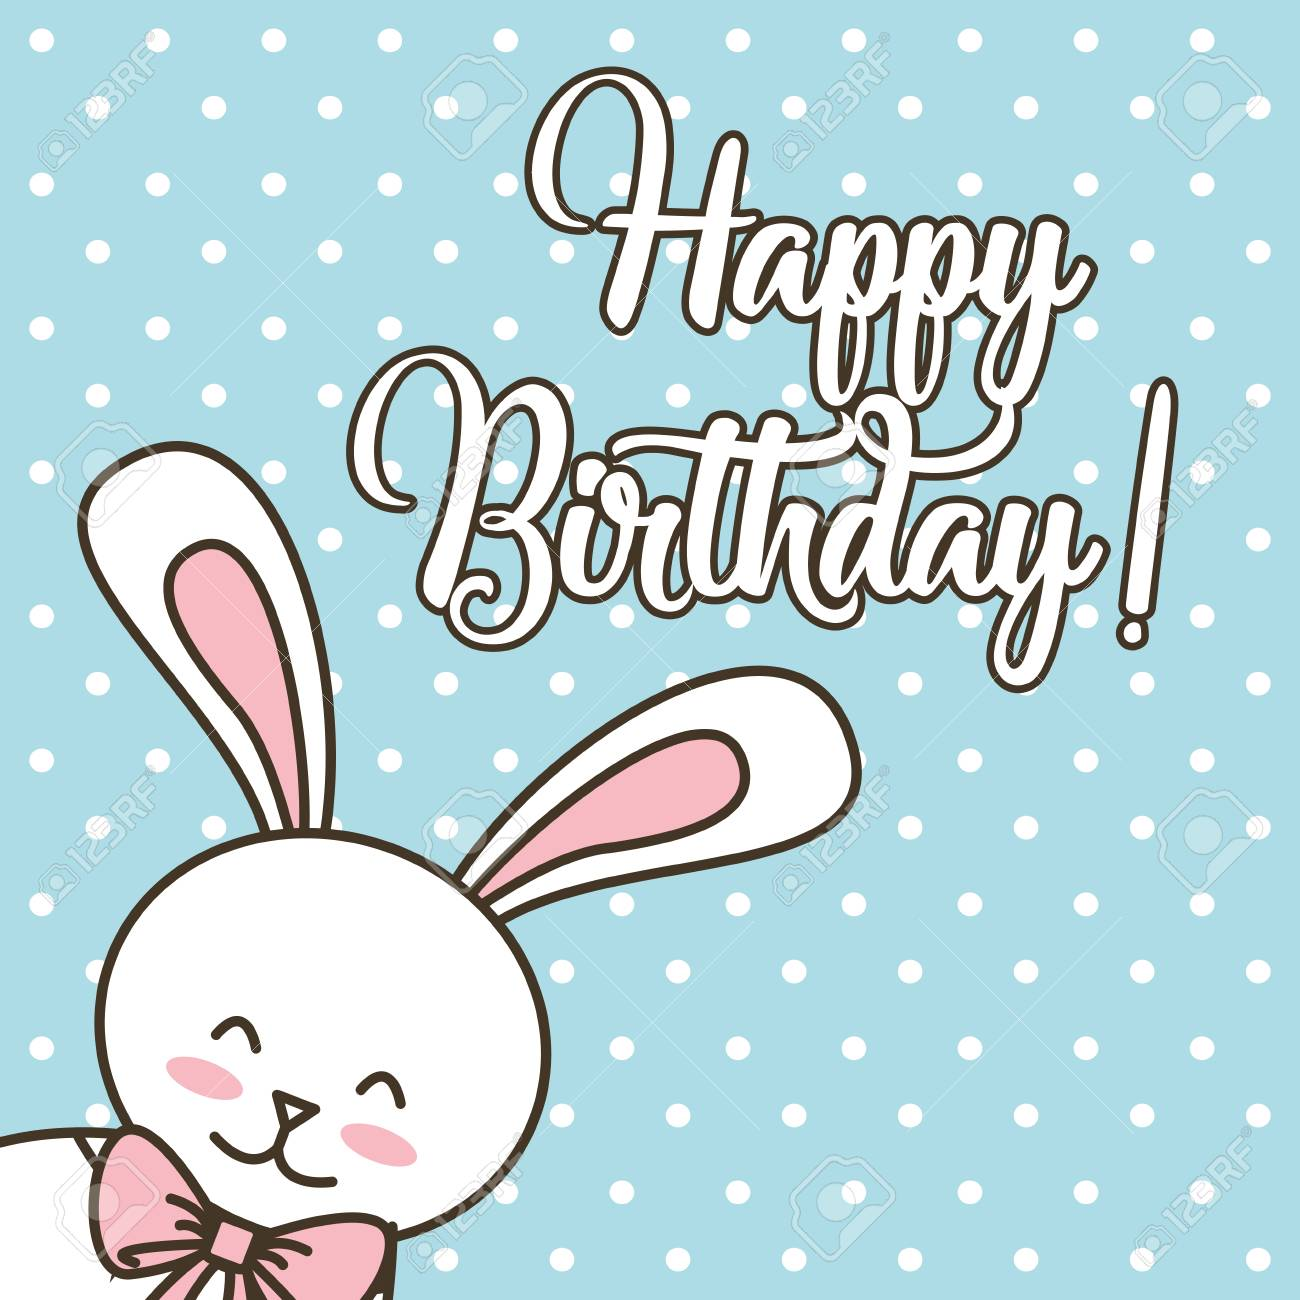 Happy Birthday Card Cartoon Cute Bunny With Bow Vector Illustration Stock